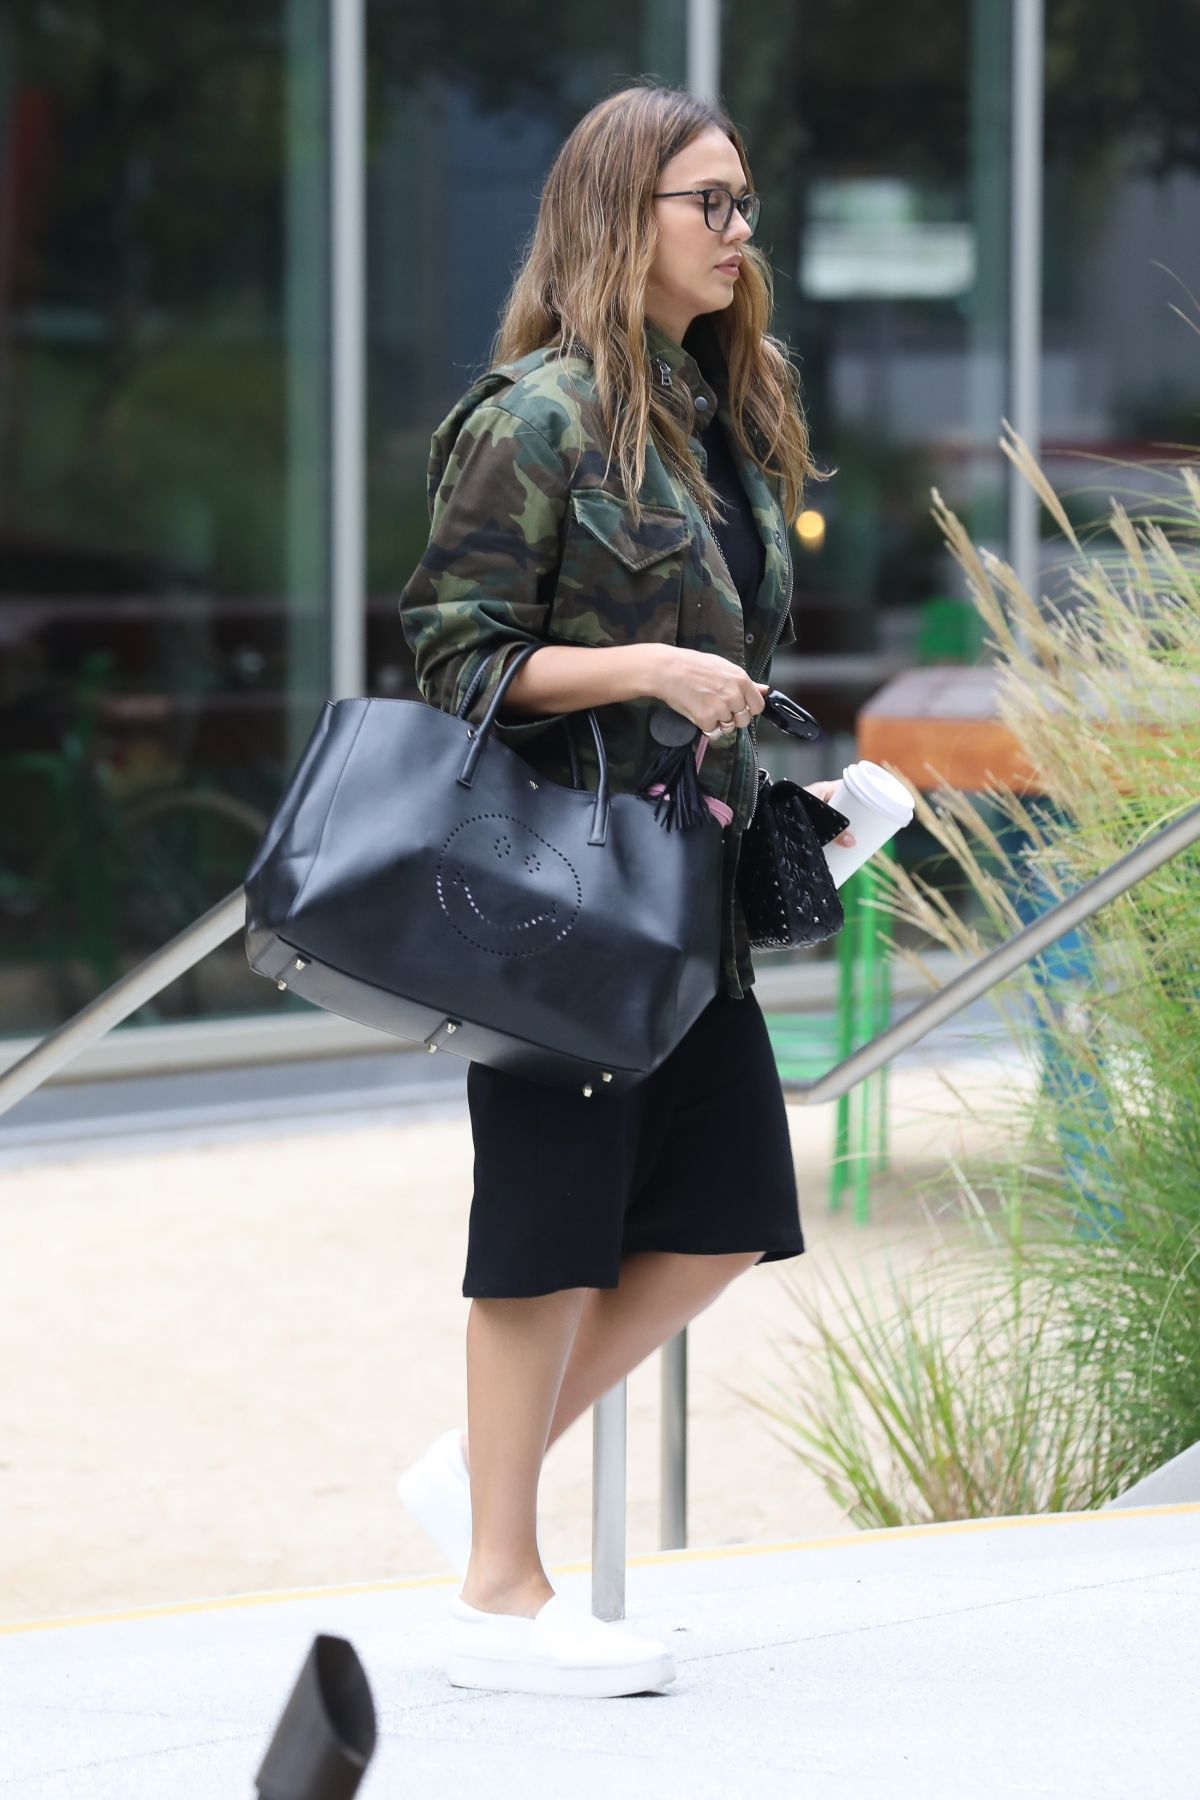 http://www.hawtcelebs.com/wp-content/uploads/2017/08/jessica-alba-out-and-about-in-los-angeles-08-25-2017_9.jpg